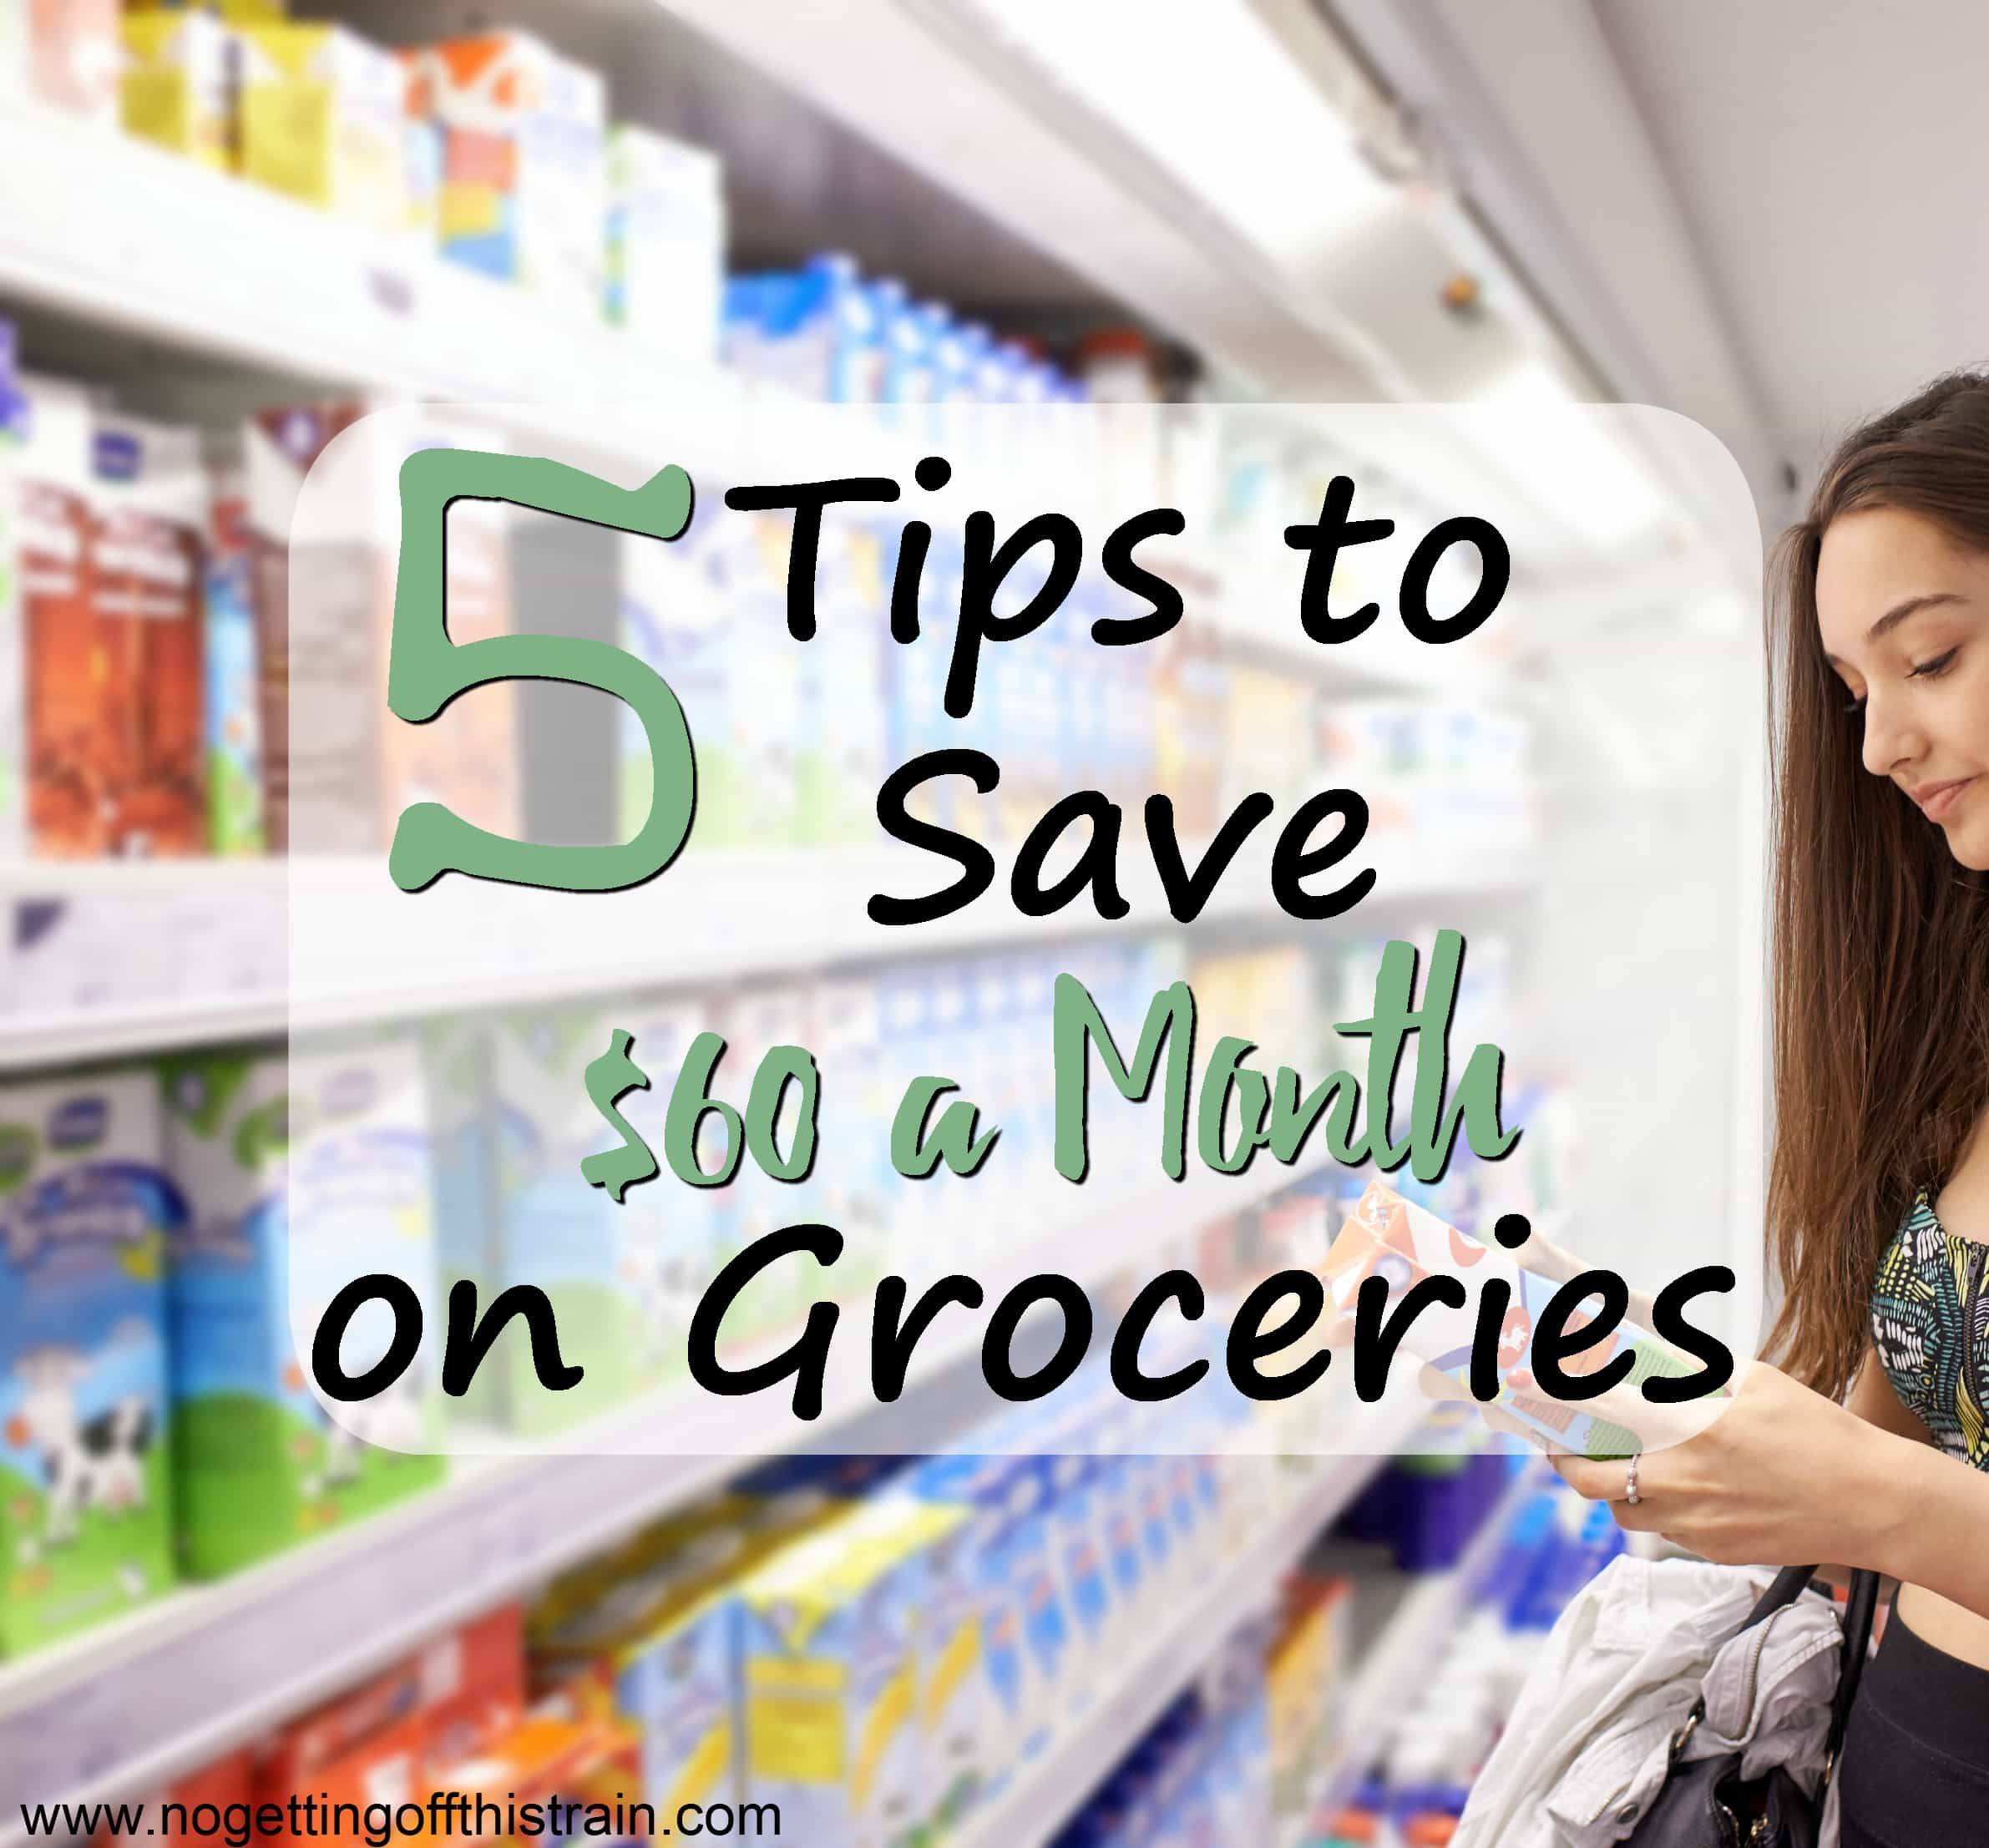 5 Tips to Save $60 a Month on Groceries